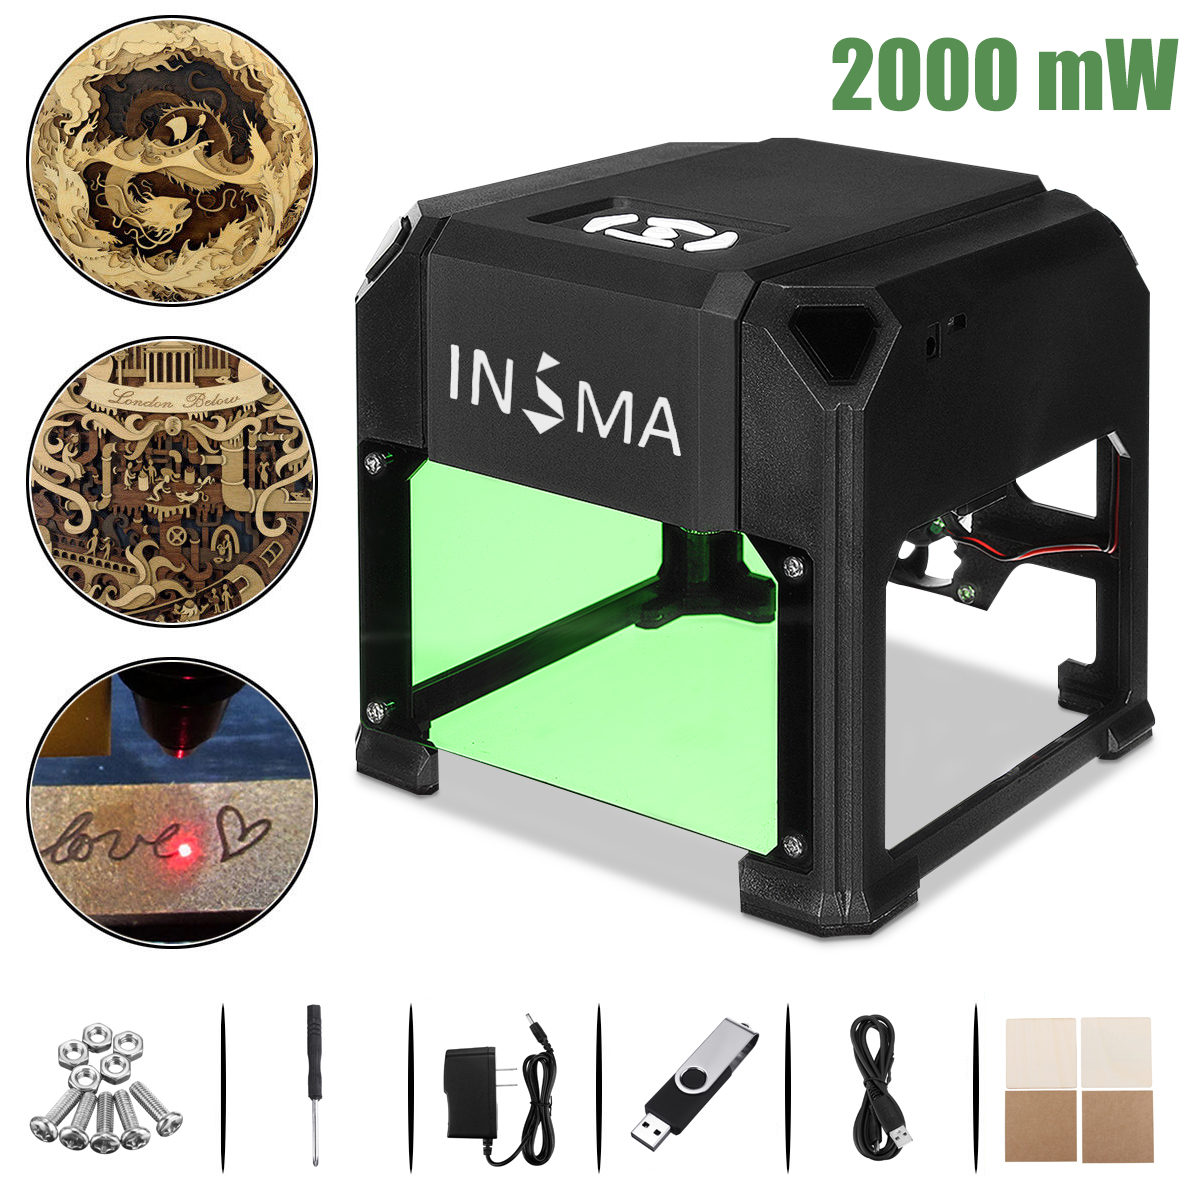 2000 mw CNC Laser Stecher DIY Logo Mark Drucker Cutter Laser Gravur Carving Maschine Für Windows XP/7/ 8/10 für MAC OS